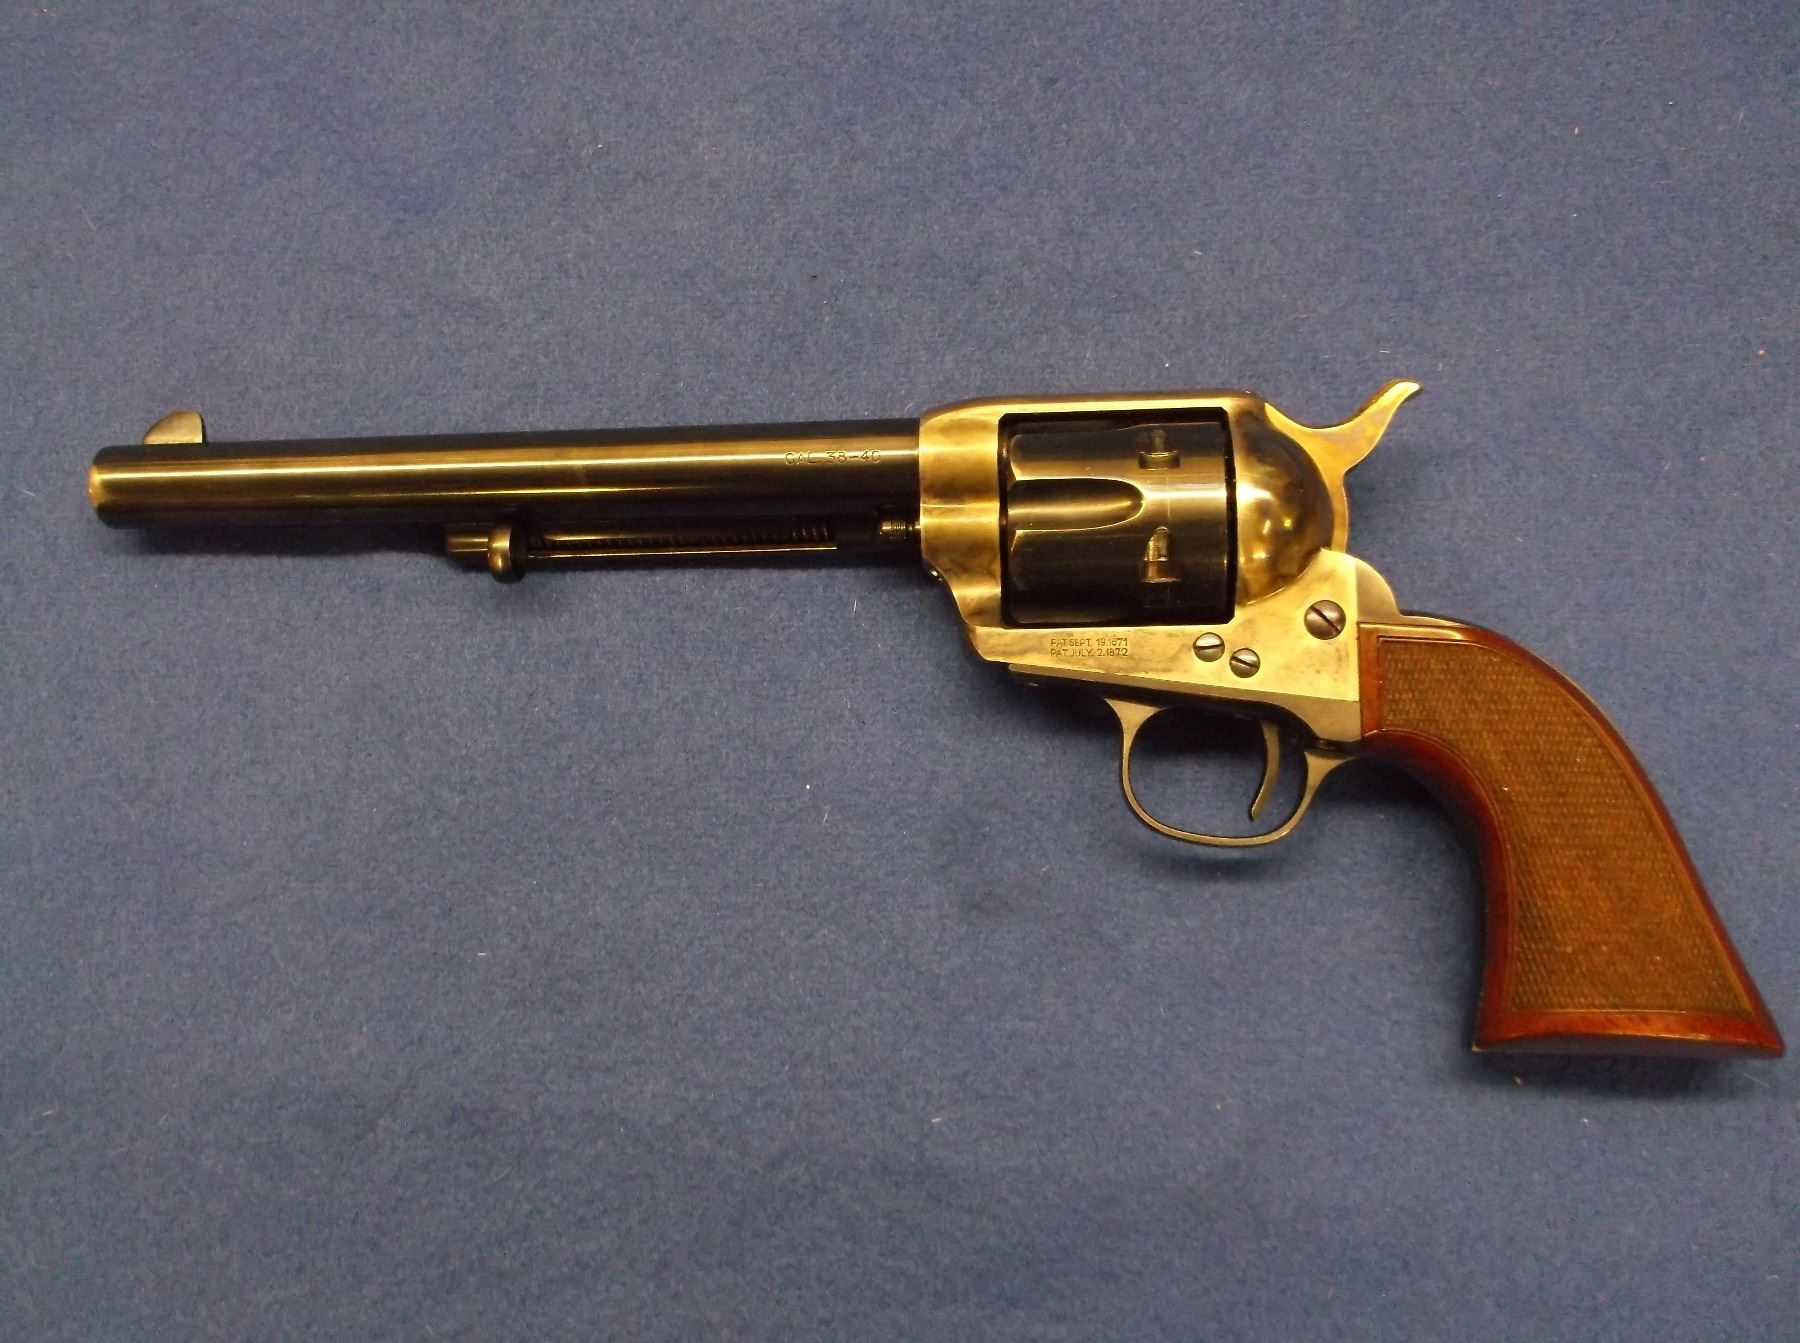 Cimarron revolver 38 40 made in italy 75 barrel checkered image 1 cimarron revolver 38 40 made in italy 75 altavistaventures Images